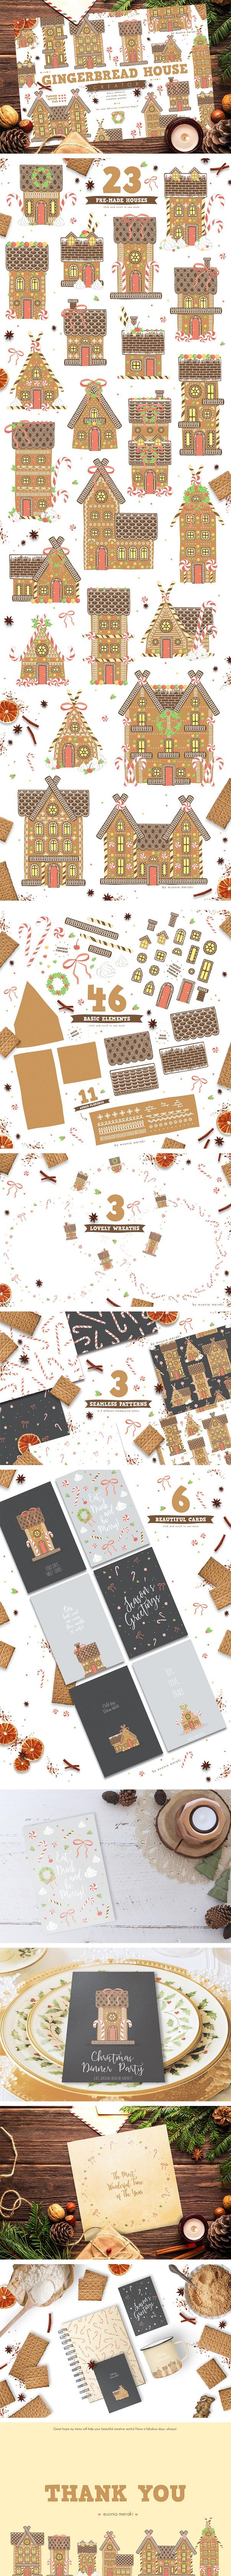 gingerbread house creator wreath card seamless pattern pattern element christmas winter all previews resize on creative market. Lovely graphic pack kit DIY gingerbread